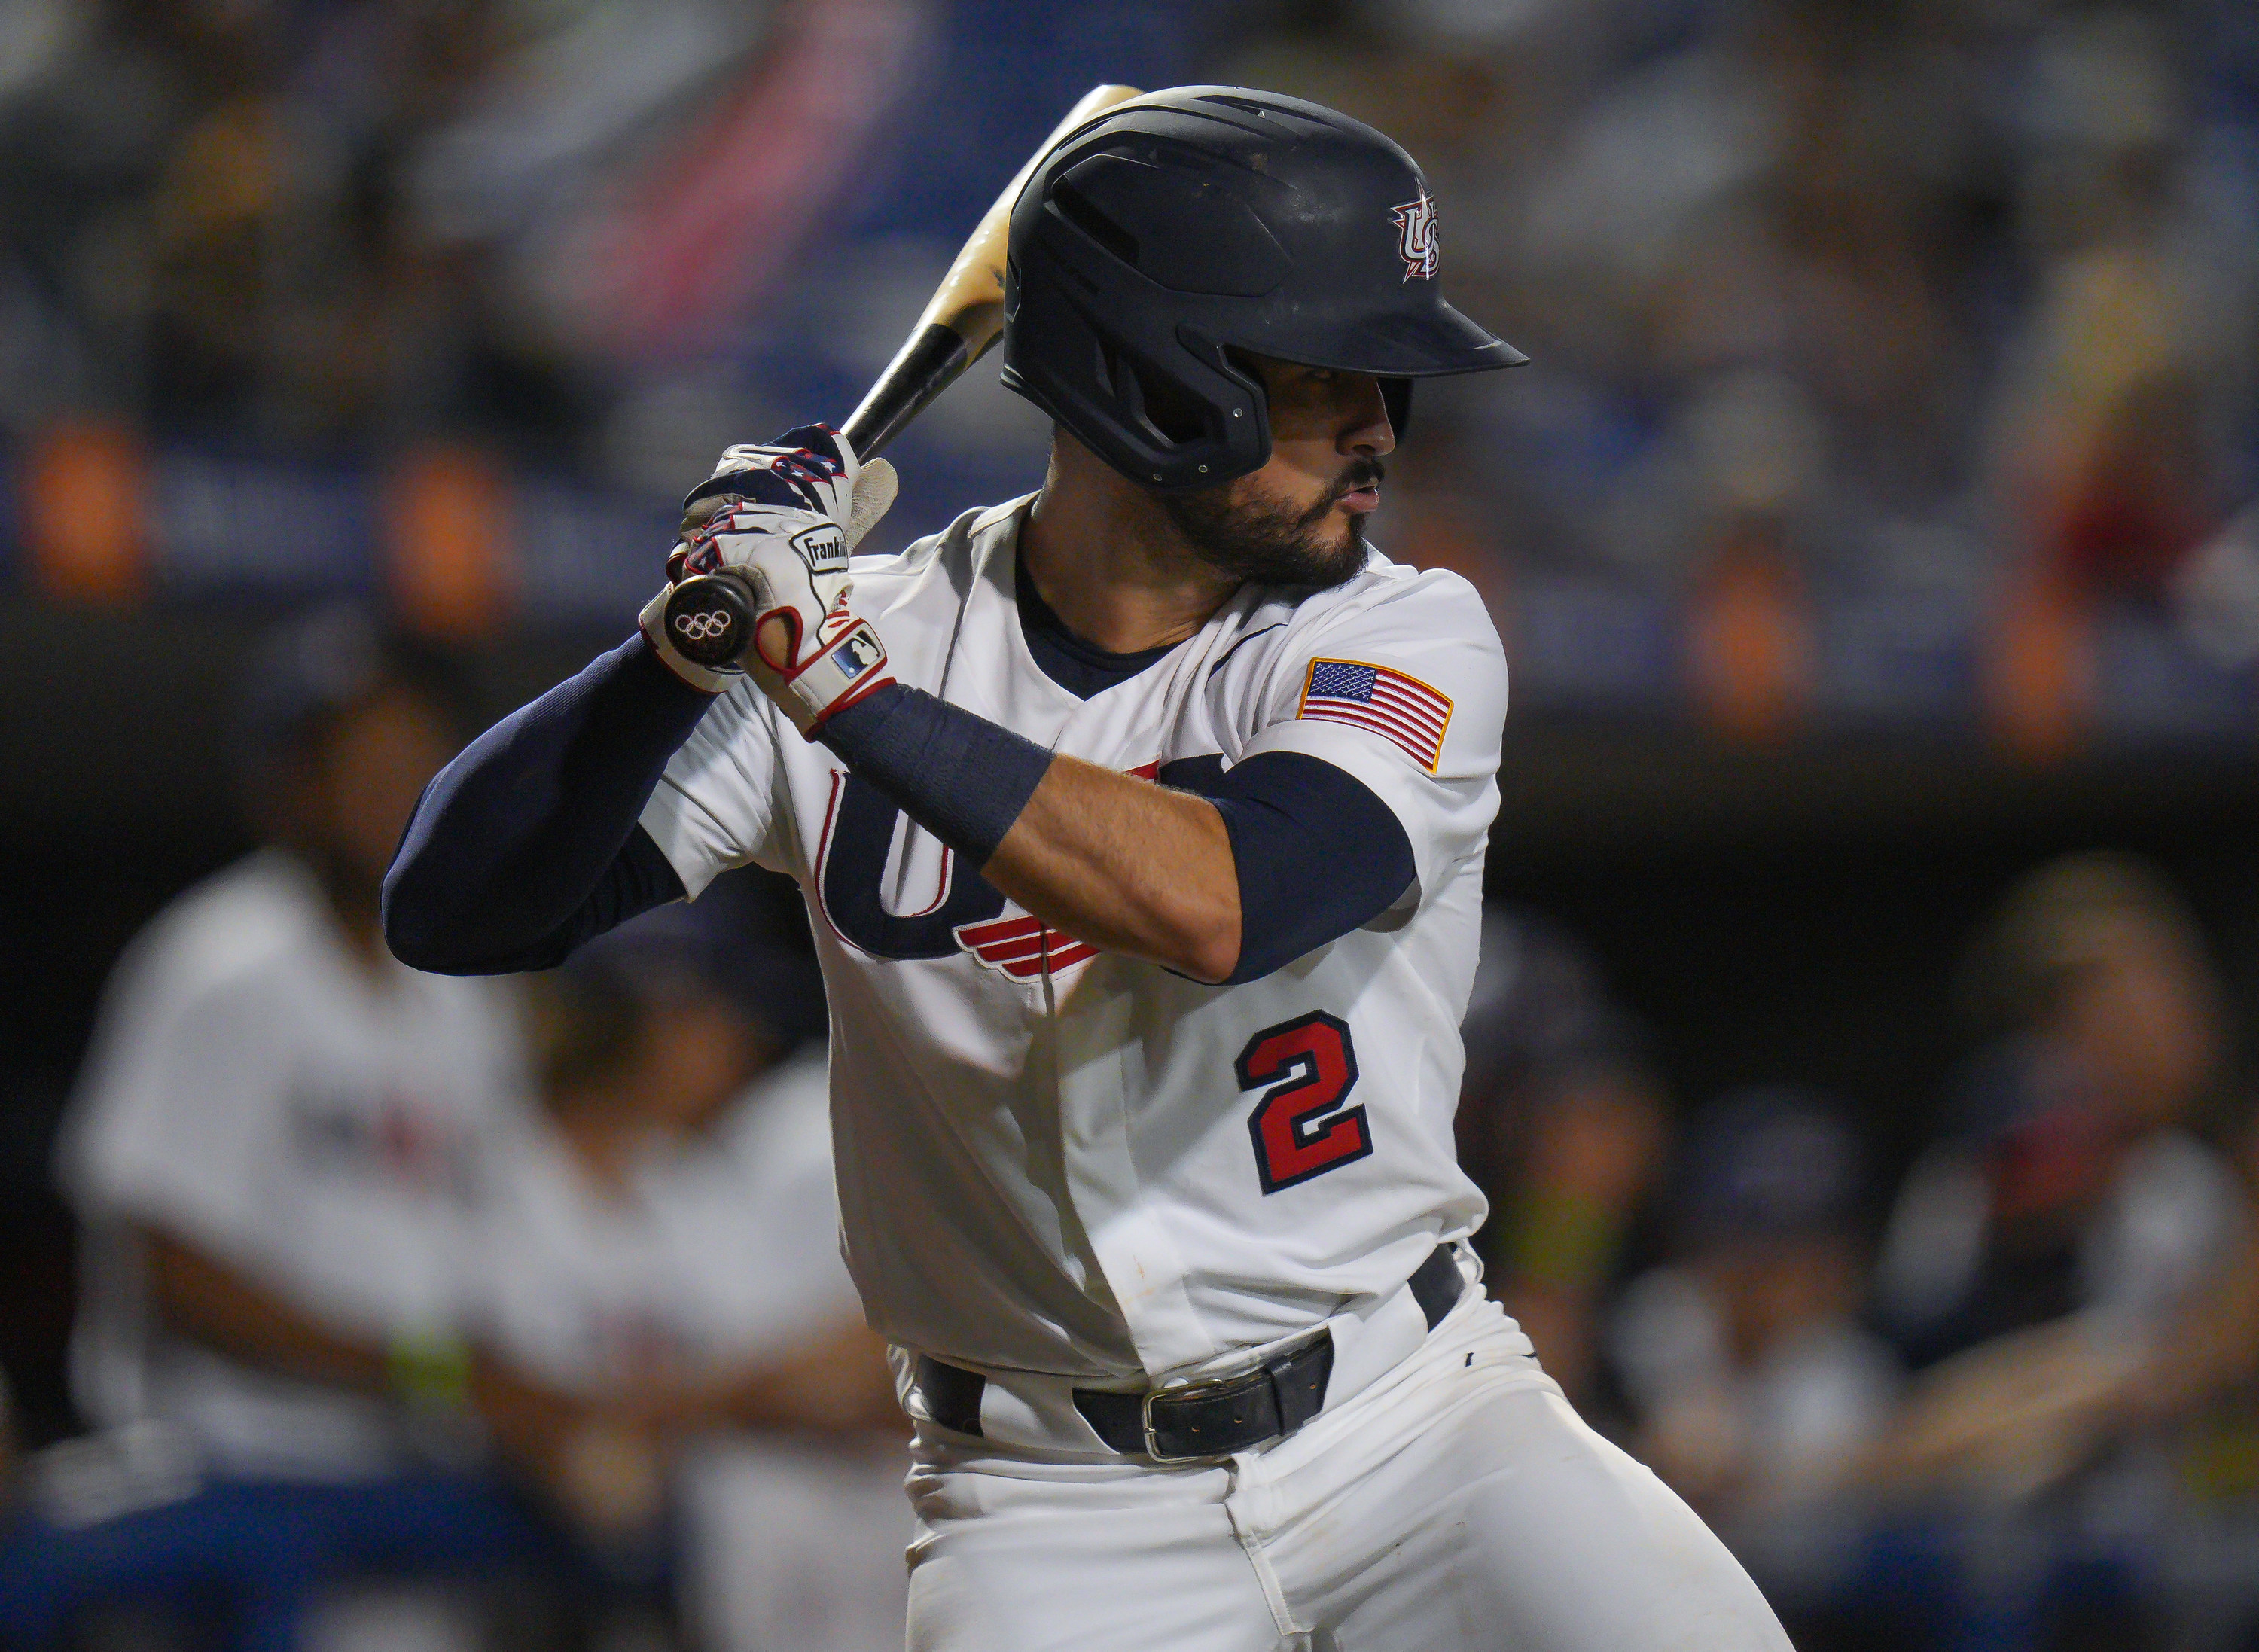 Baseball player holds a bat ready to swing